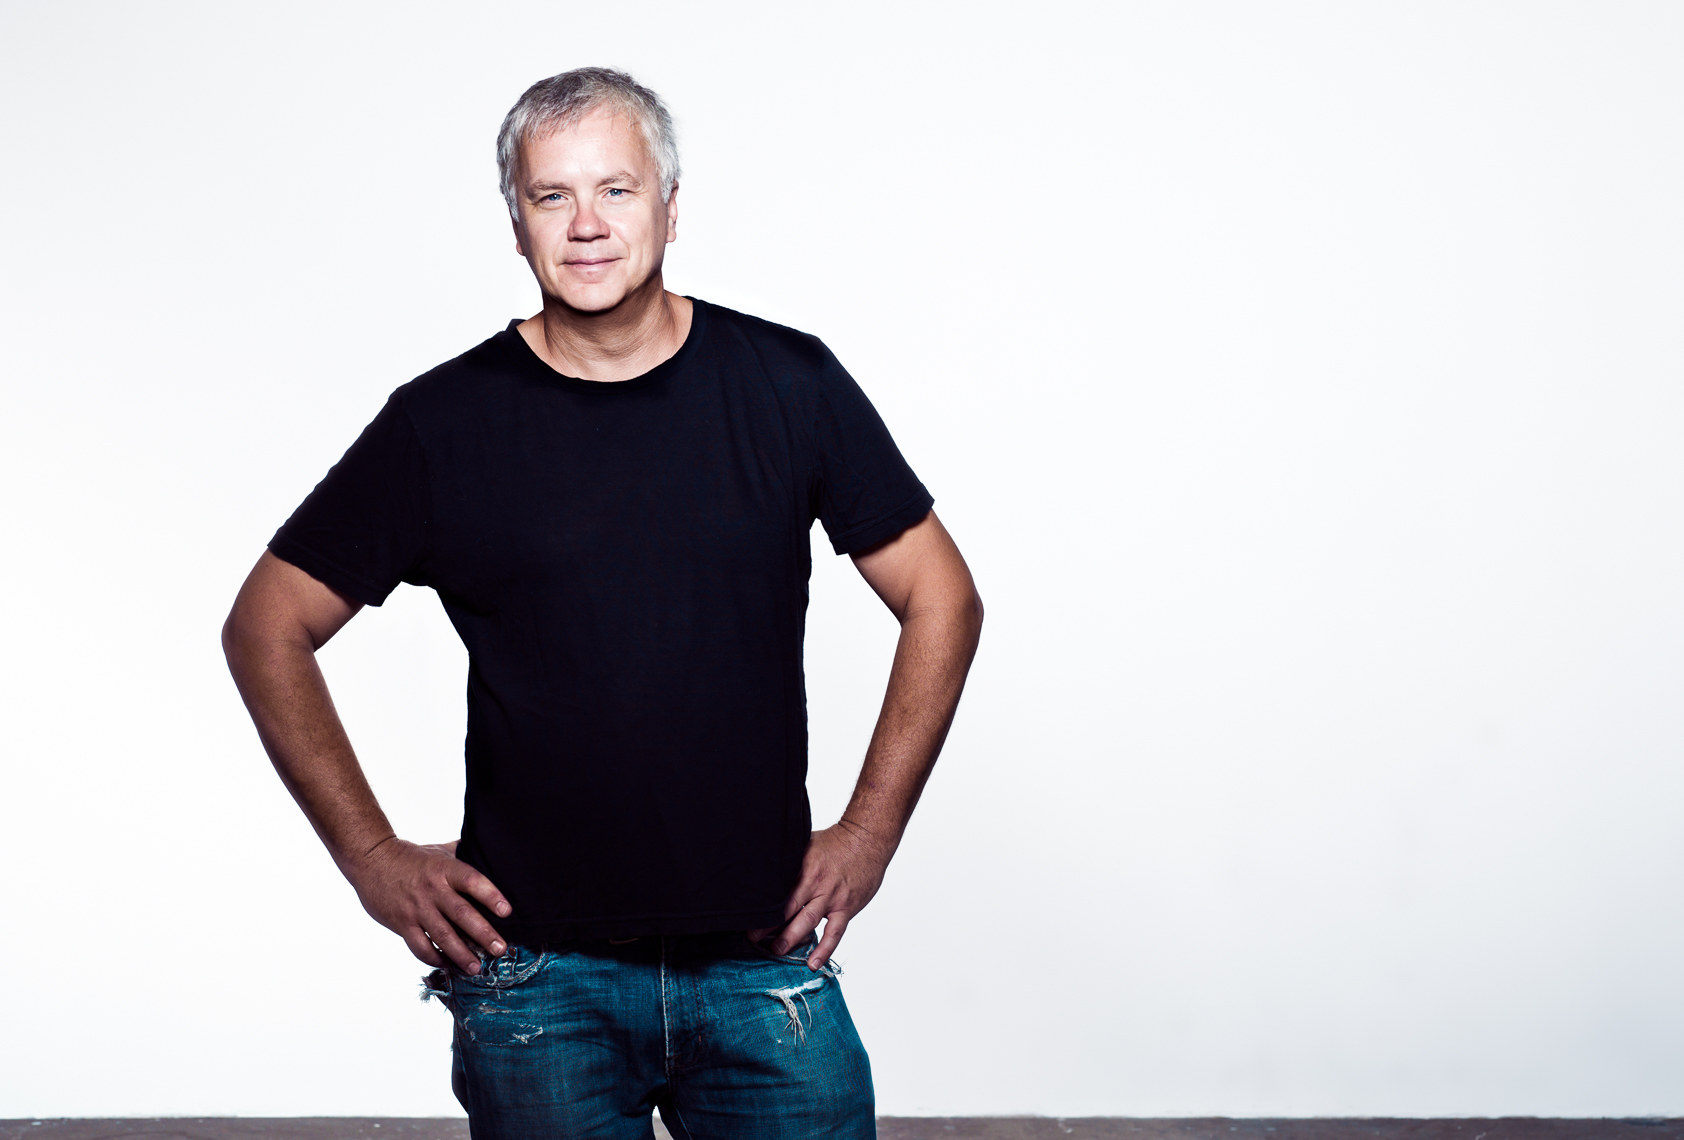 Tim Robbins photographed by Eric Schwabel